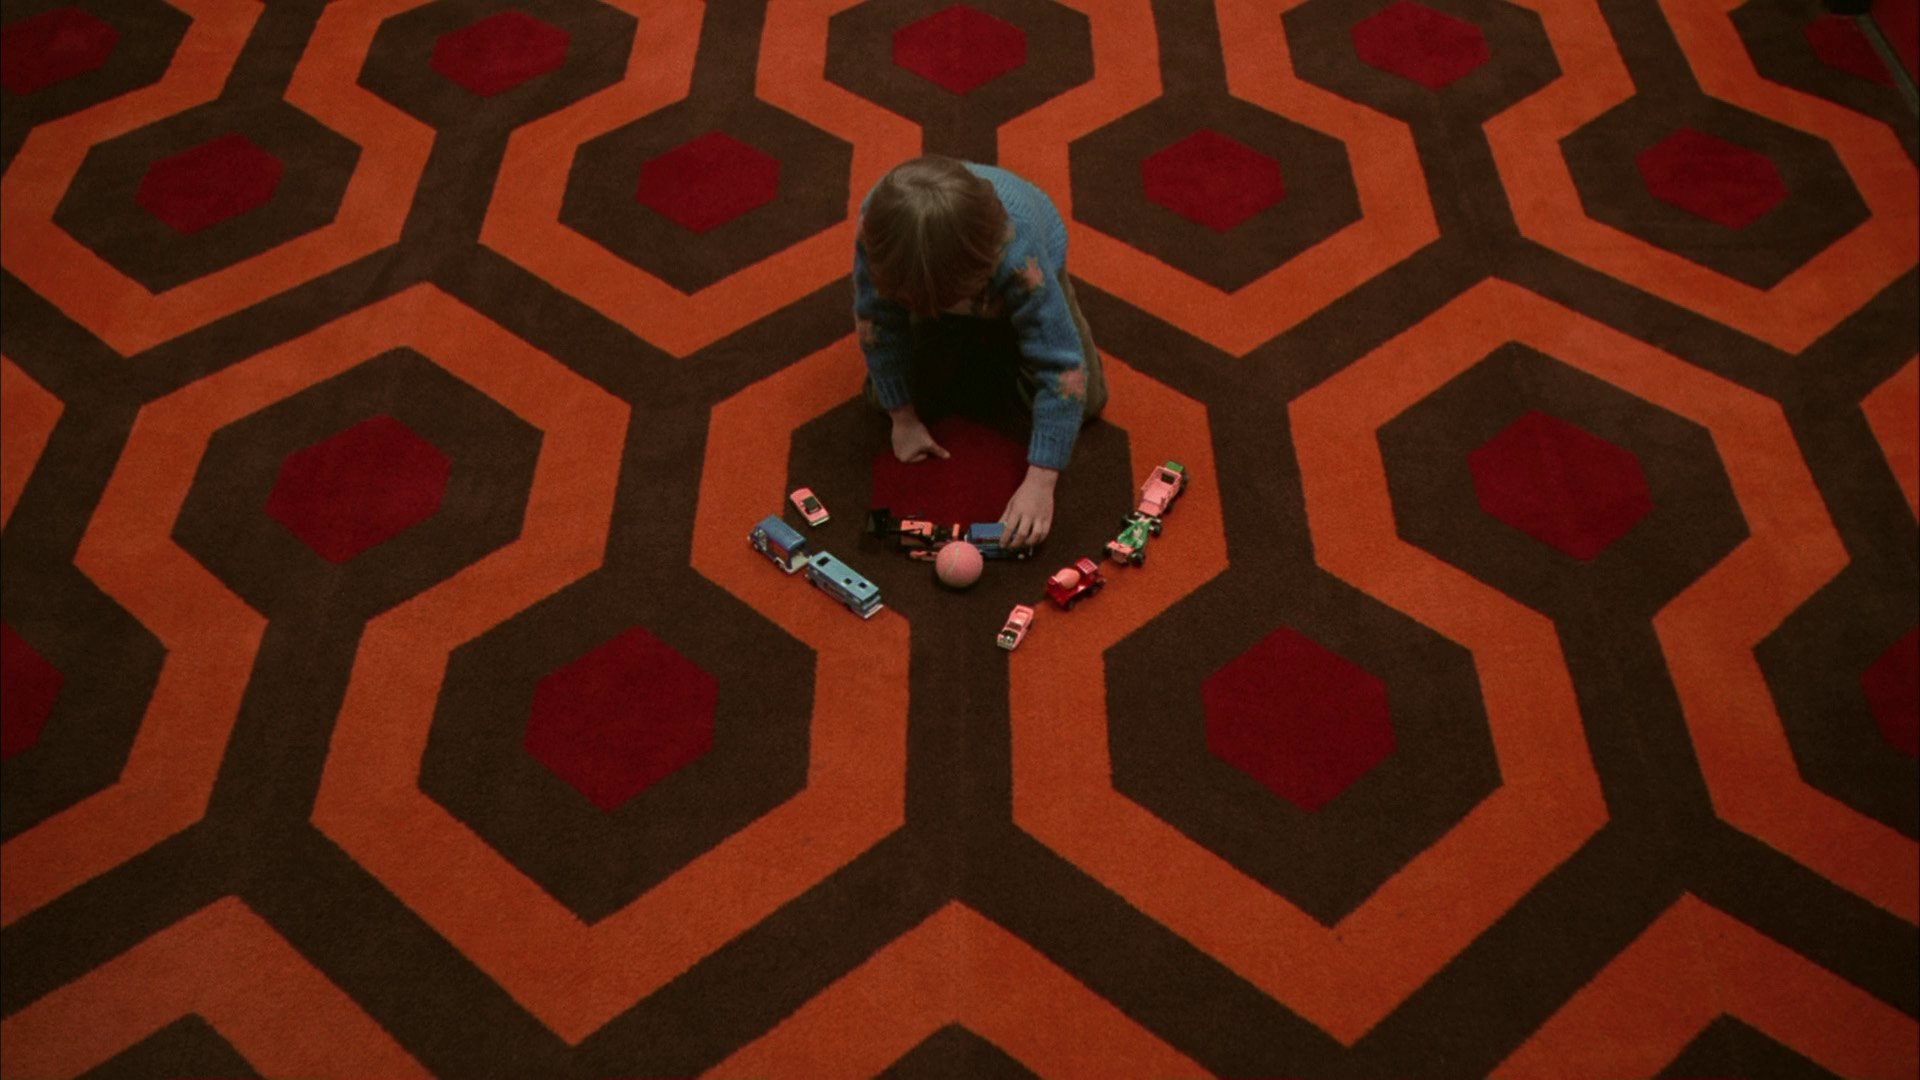 Checkmate The Story Behind Kubrick S Carpet In The Shining Revealed Film And Furniture